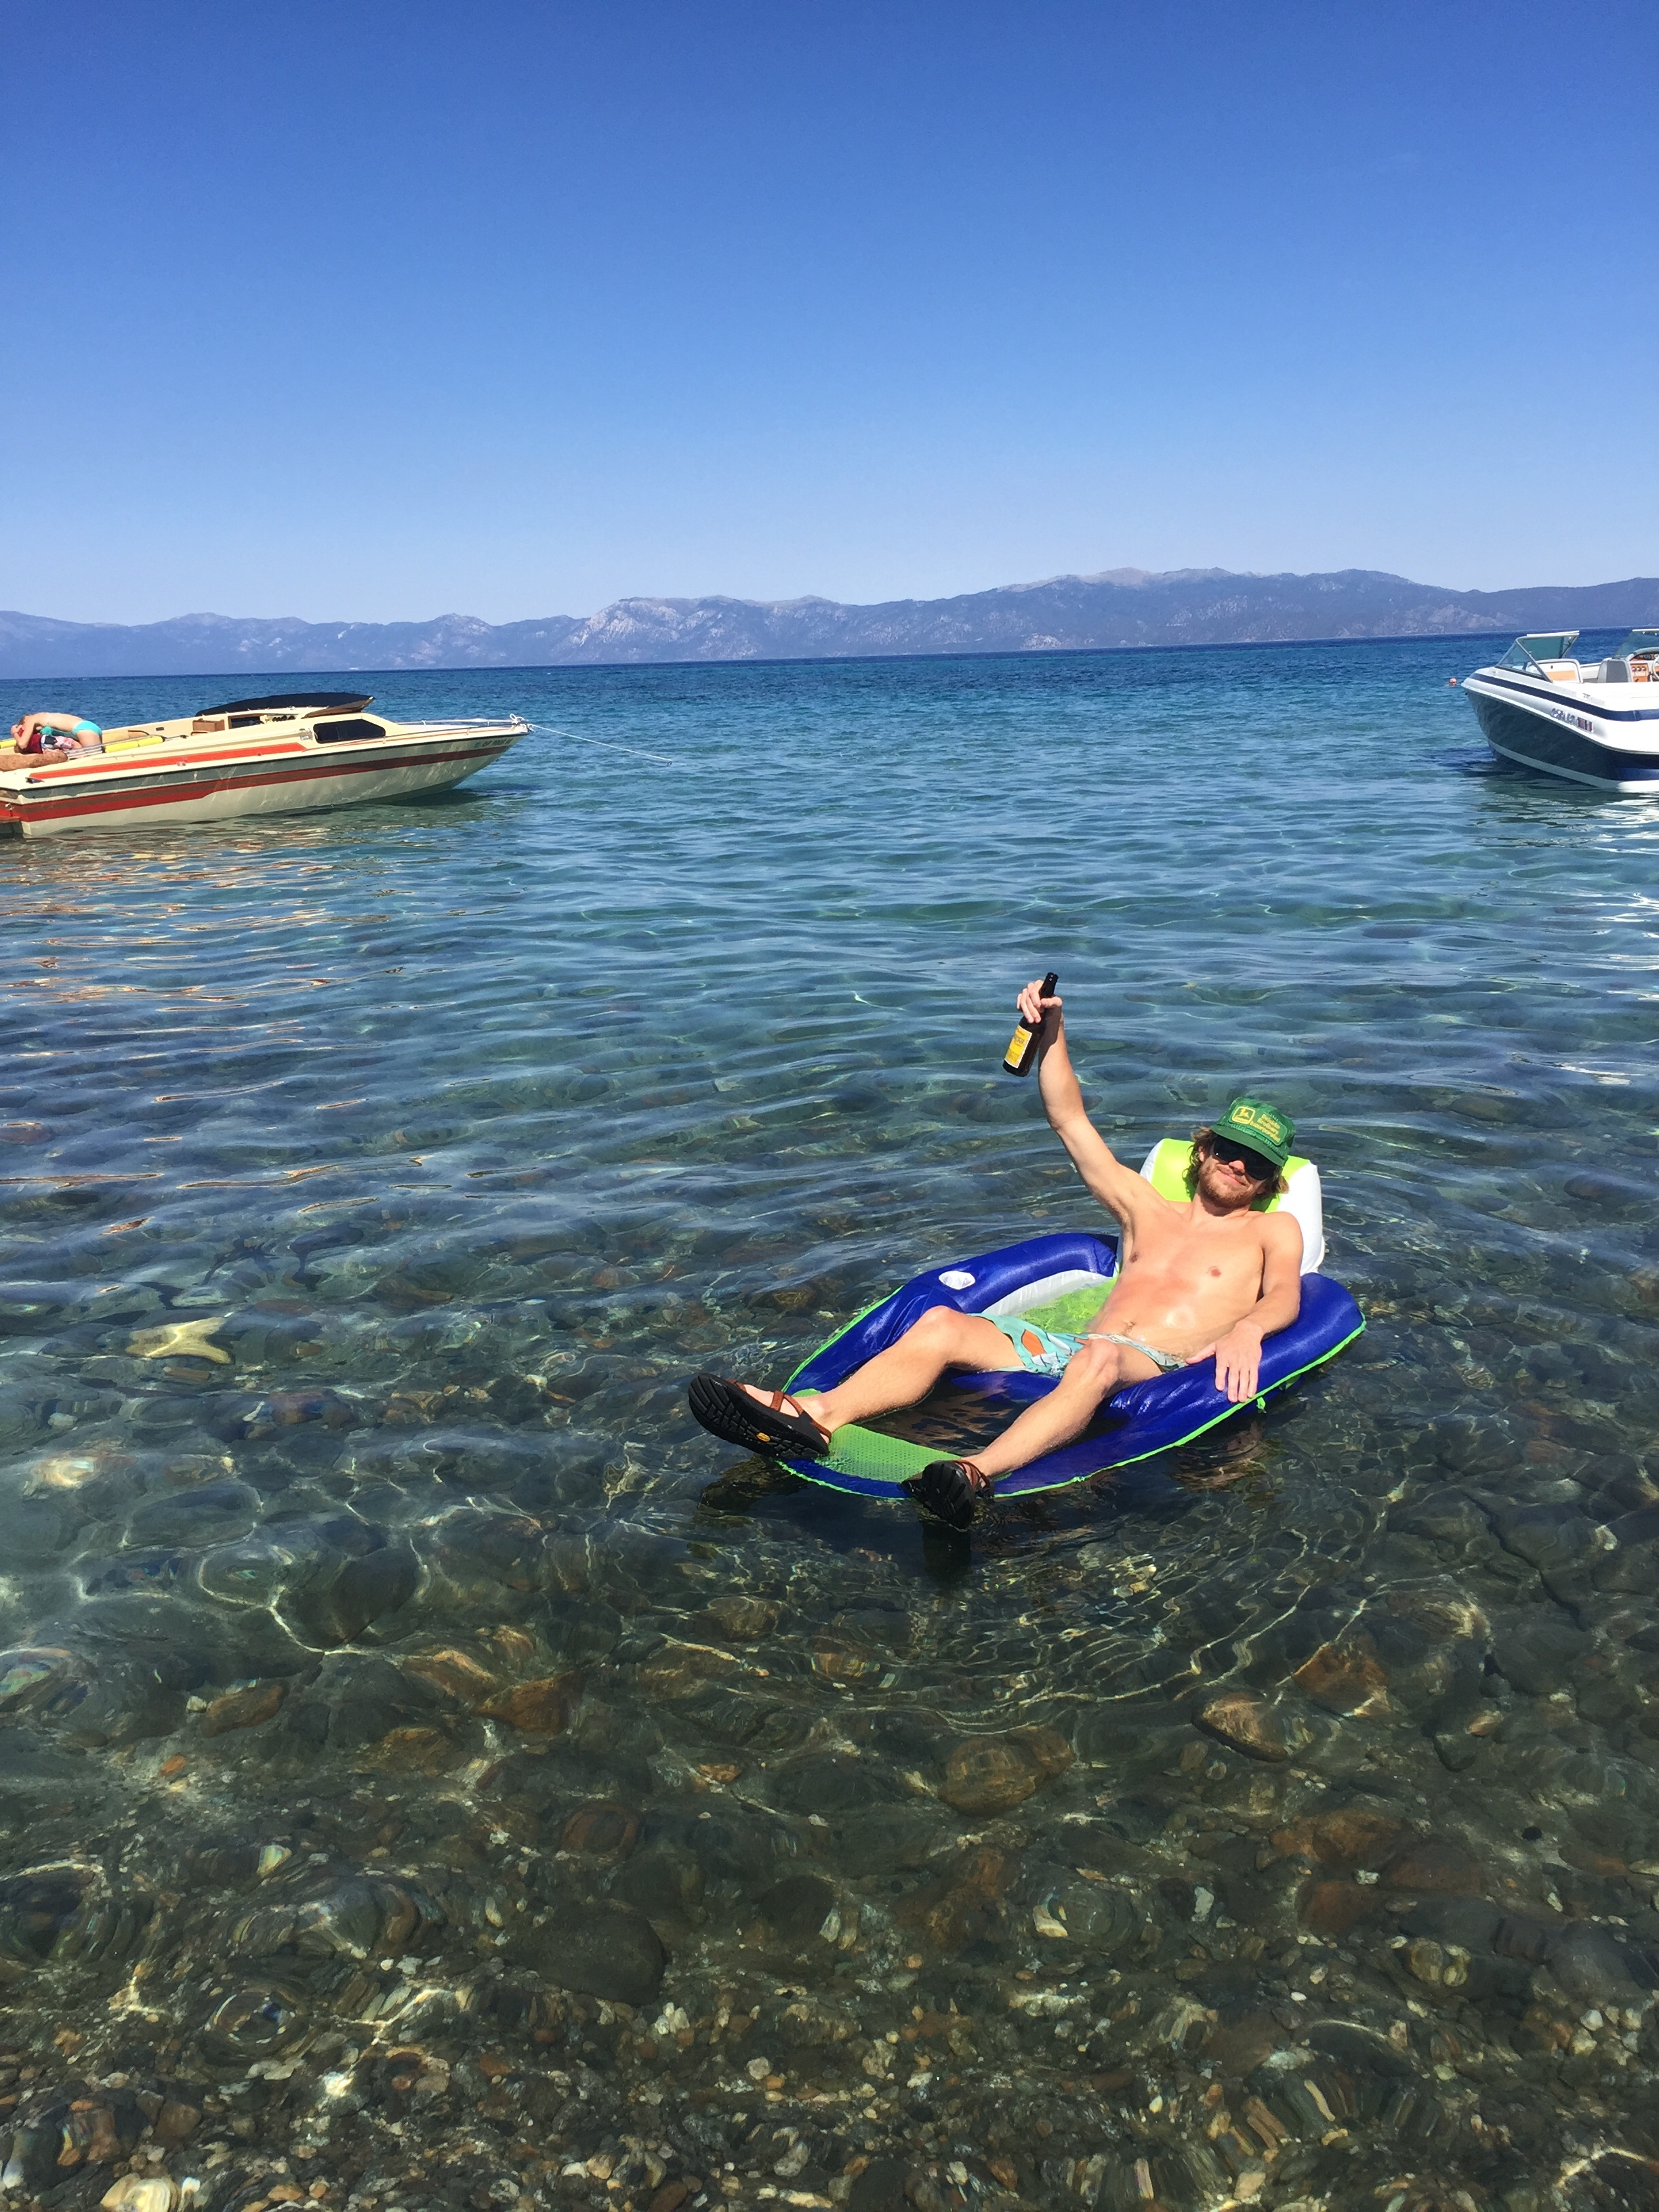 Summertime at Baldwin Beach, Lake Tahoe